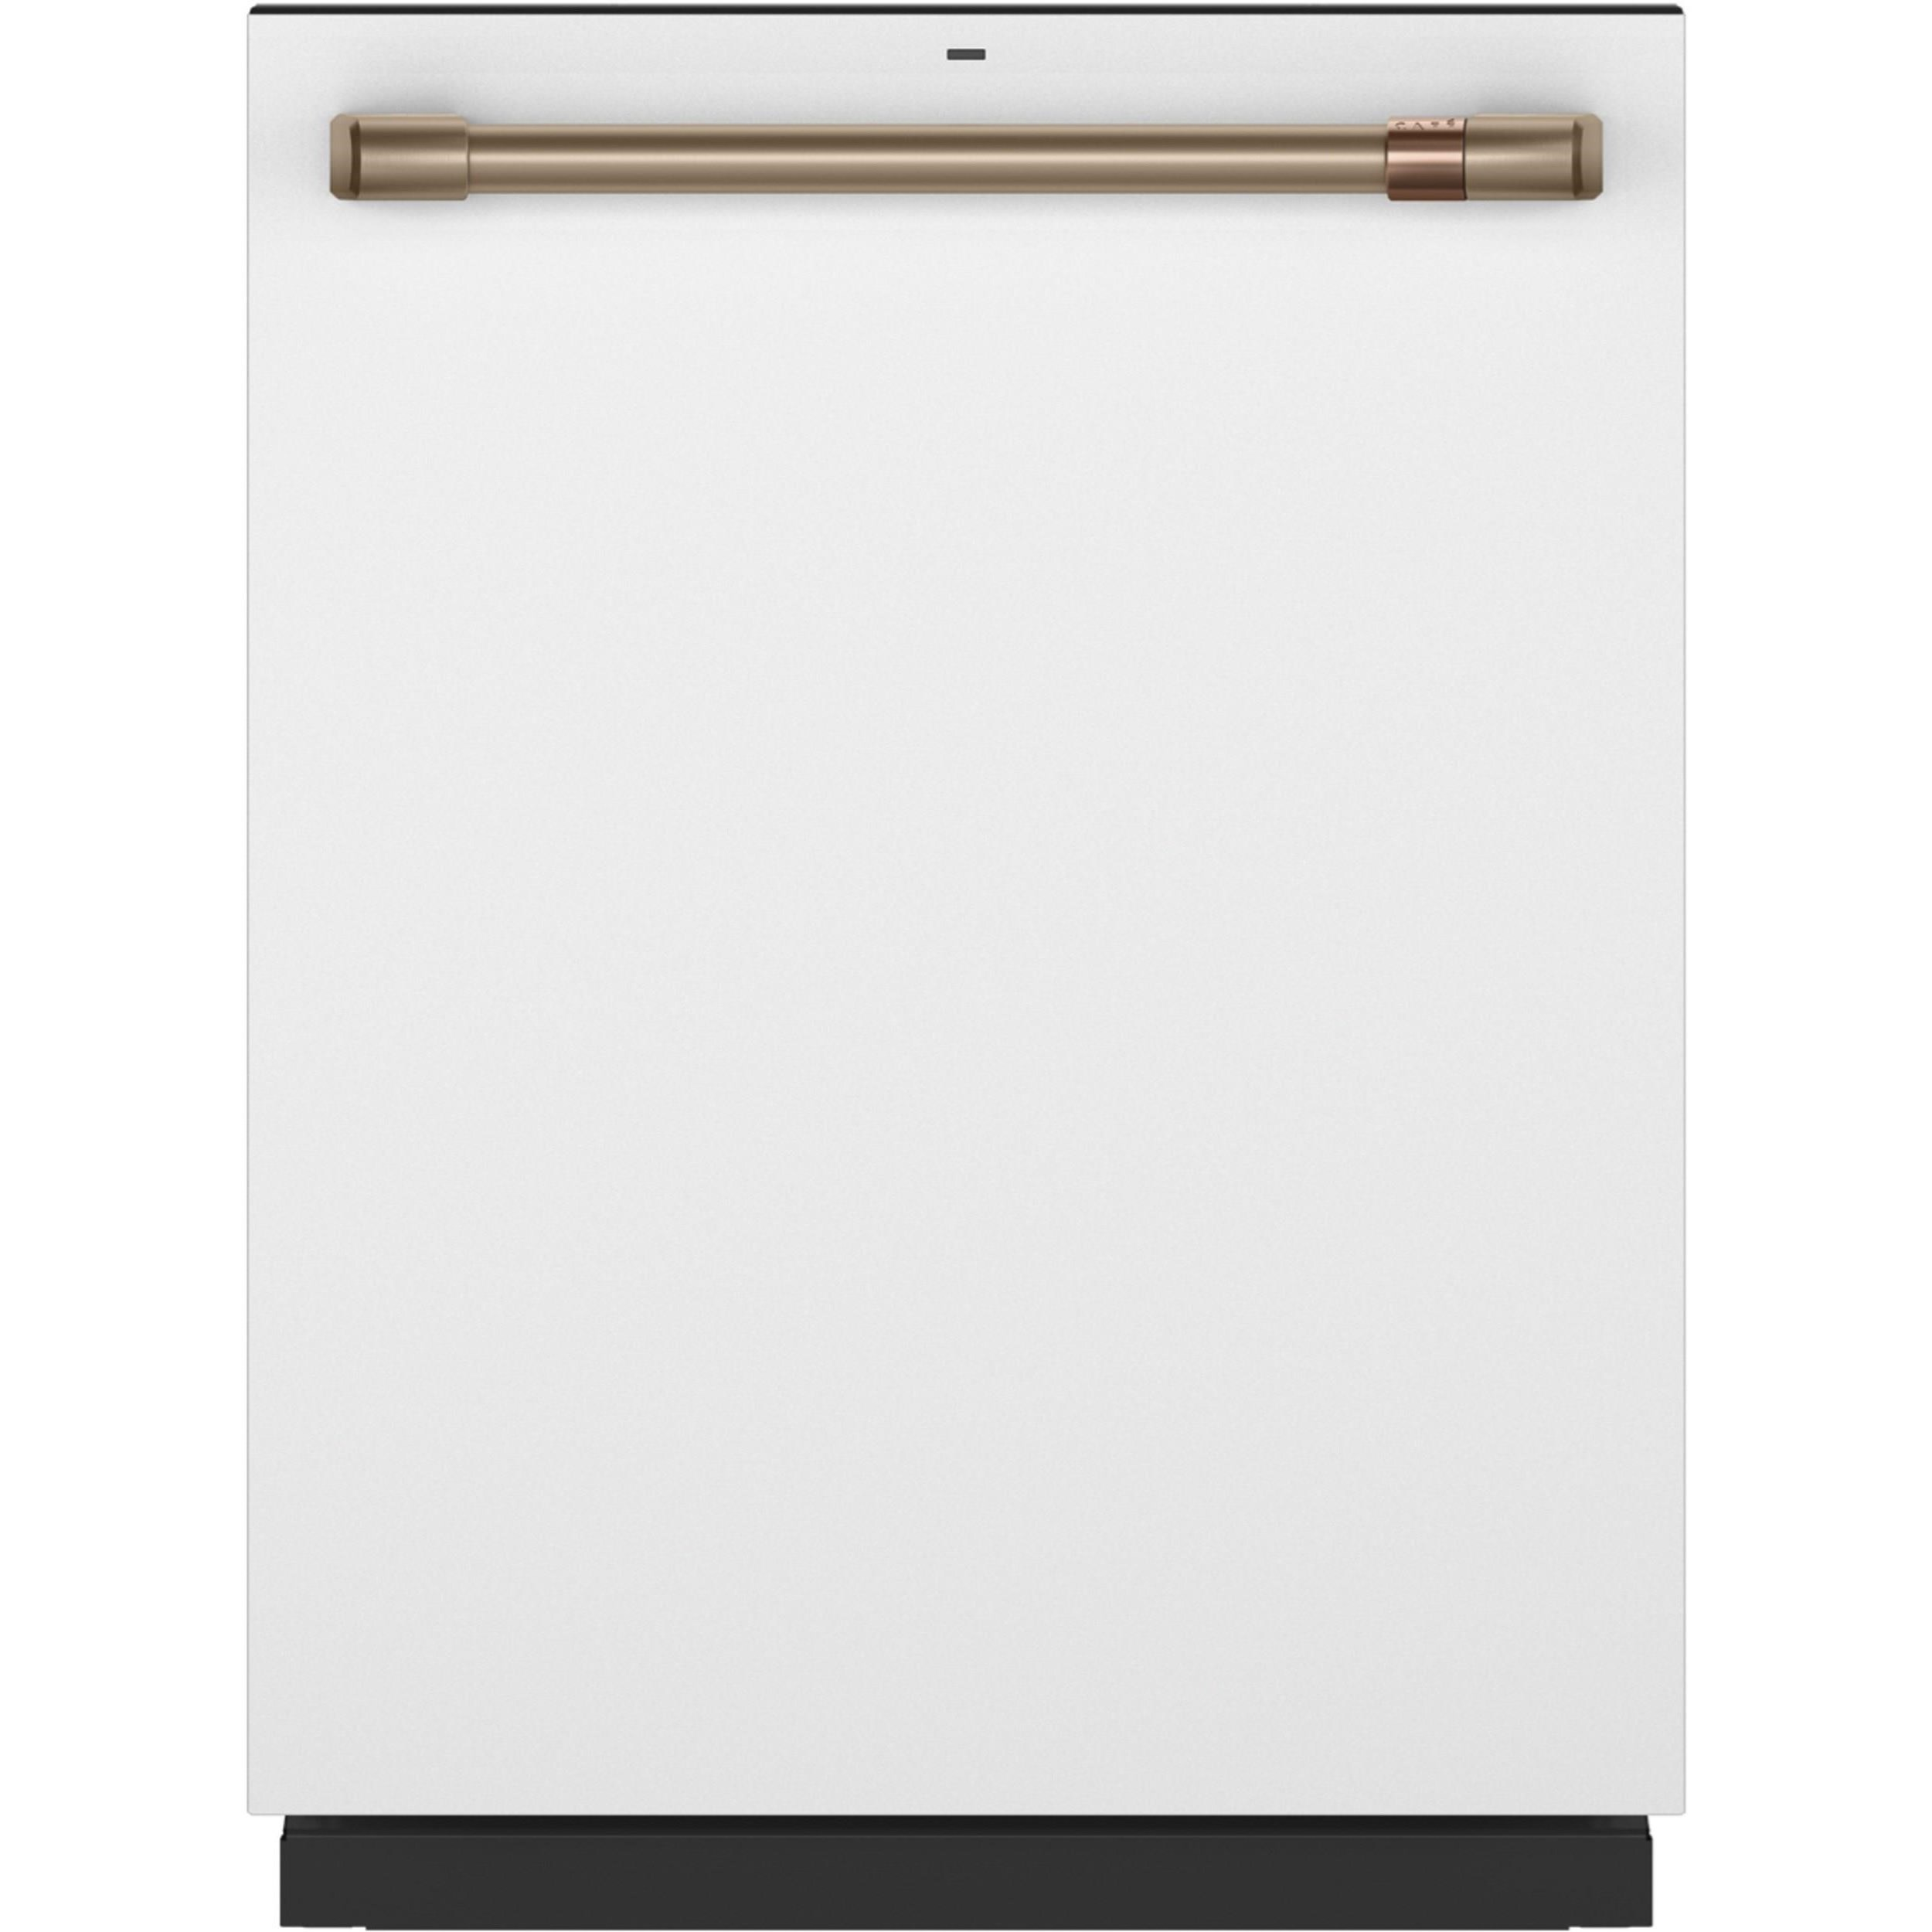 GE Cafe Dishwashers Cafe´™ Stainless Steel Interior Dishwasher by GE Appliances at VanDrie Home Furnishings